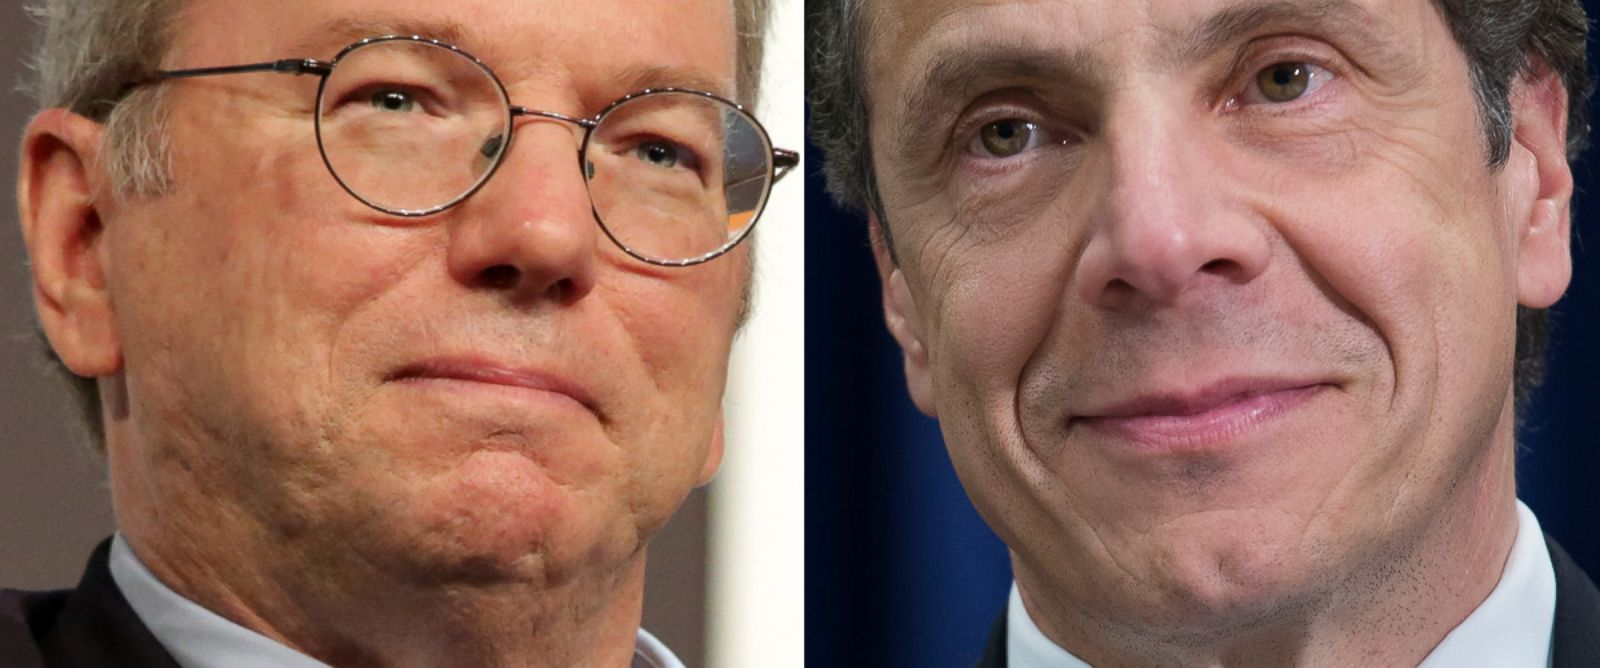 PHOTO: From left, Executive Chairman of Google Eric Schmidt in Austin, Tex., March 7, 2014 and New York State Governor Andrew Cuomo in New York, April 17, 2014.